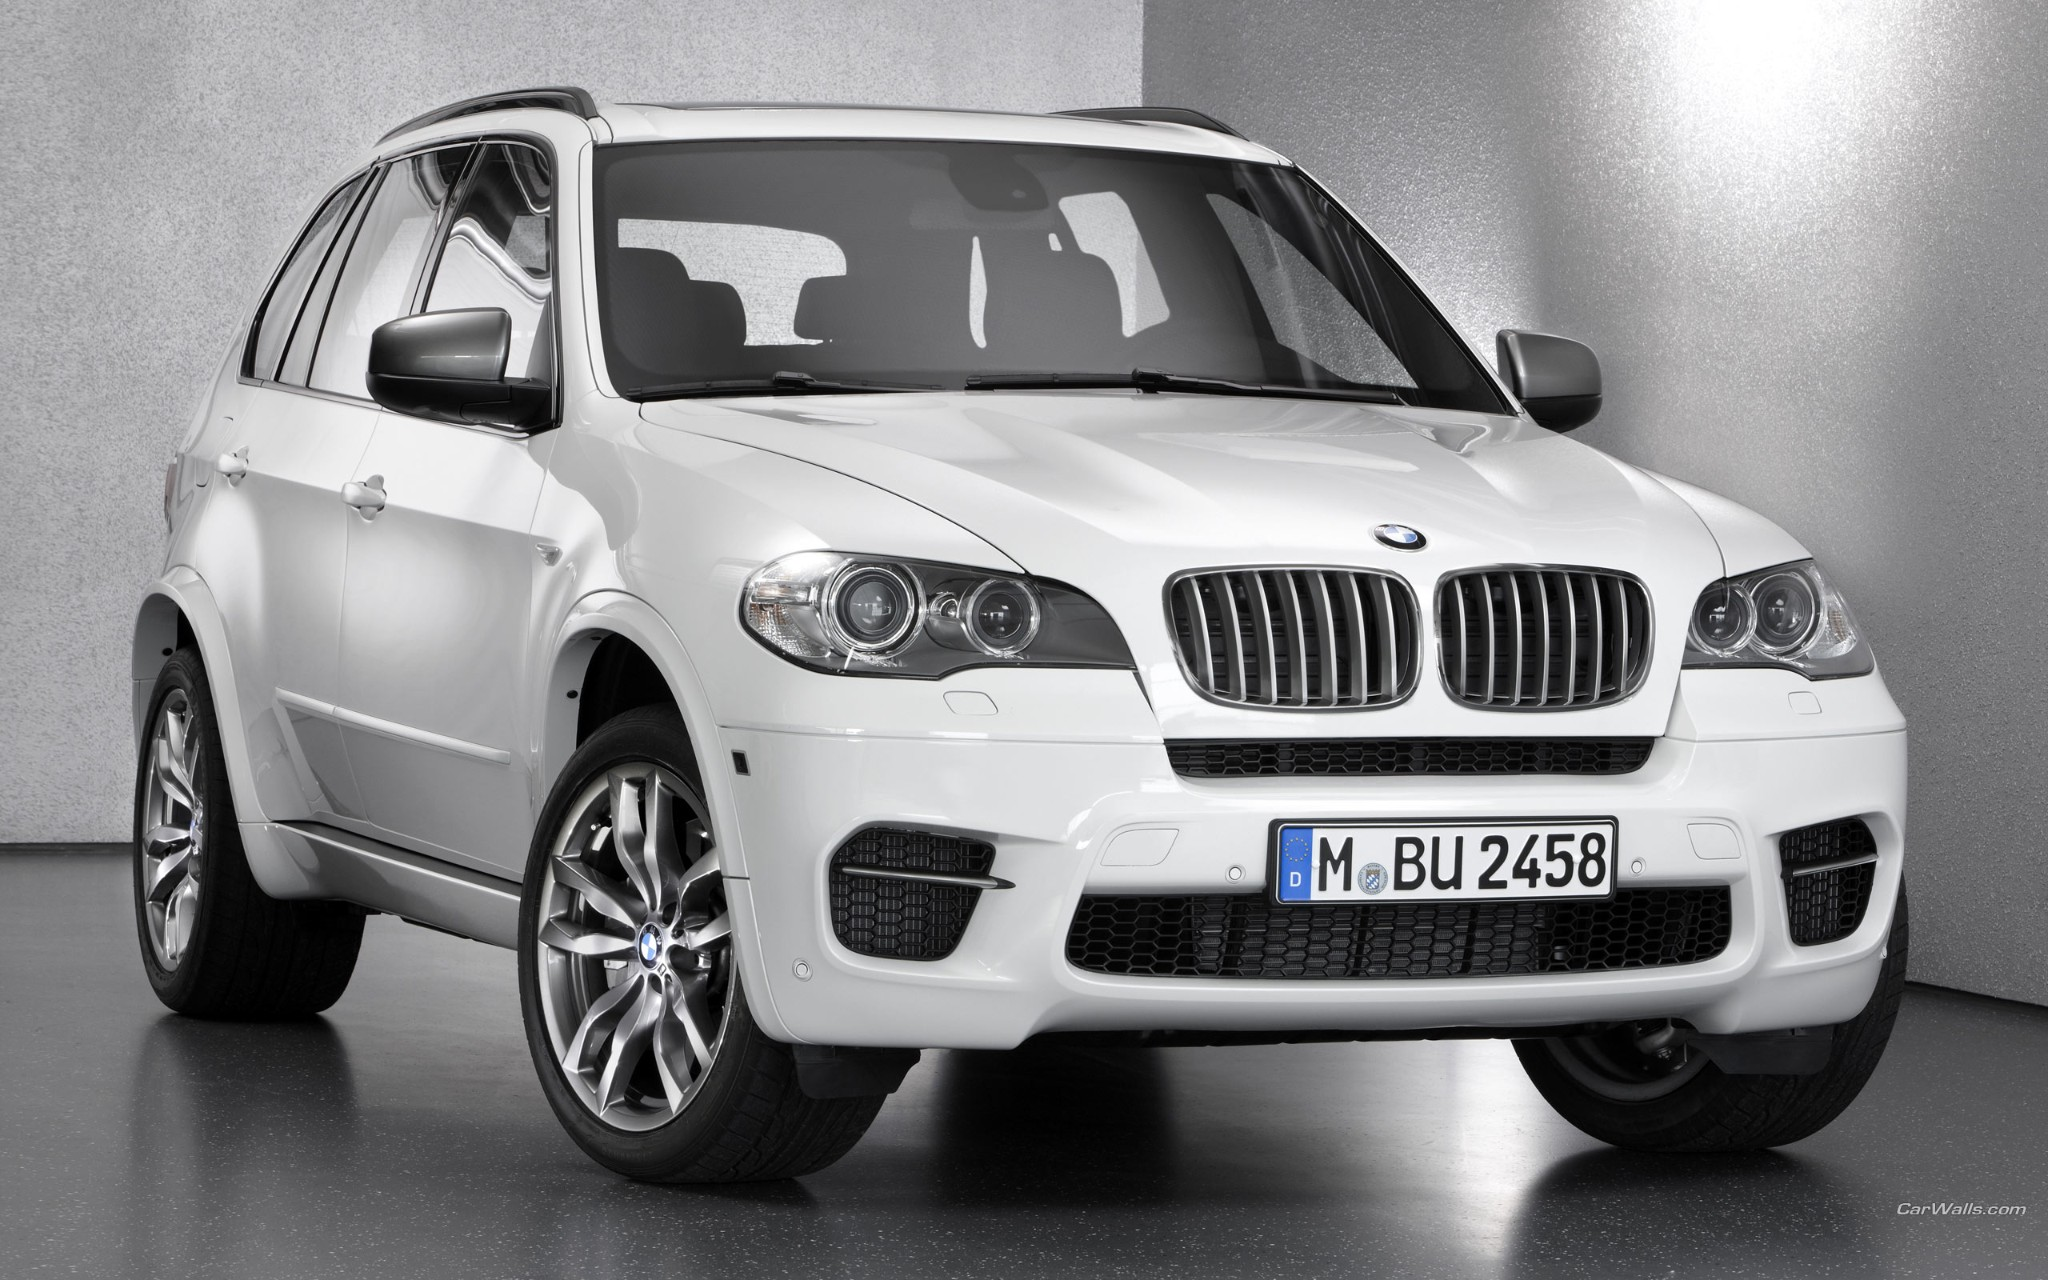 bmw x6 m package 2013 fondos de pantalla hd wallpapers hd. Black Bedroom Furniture Sets. Home Design Ideas